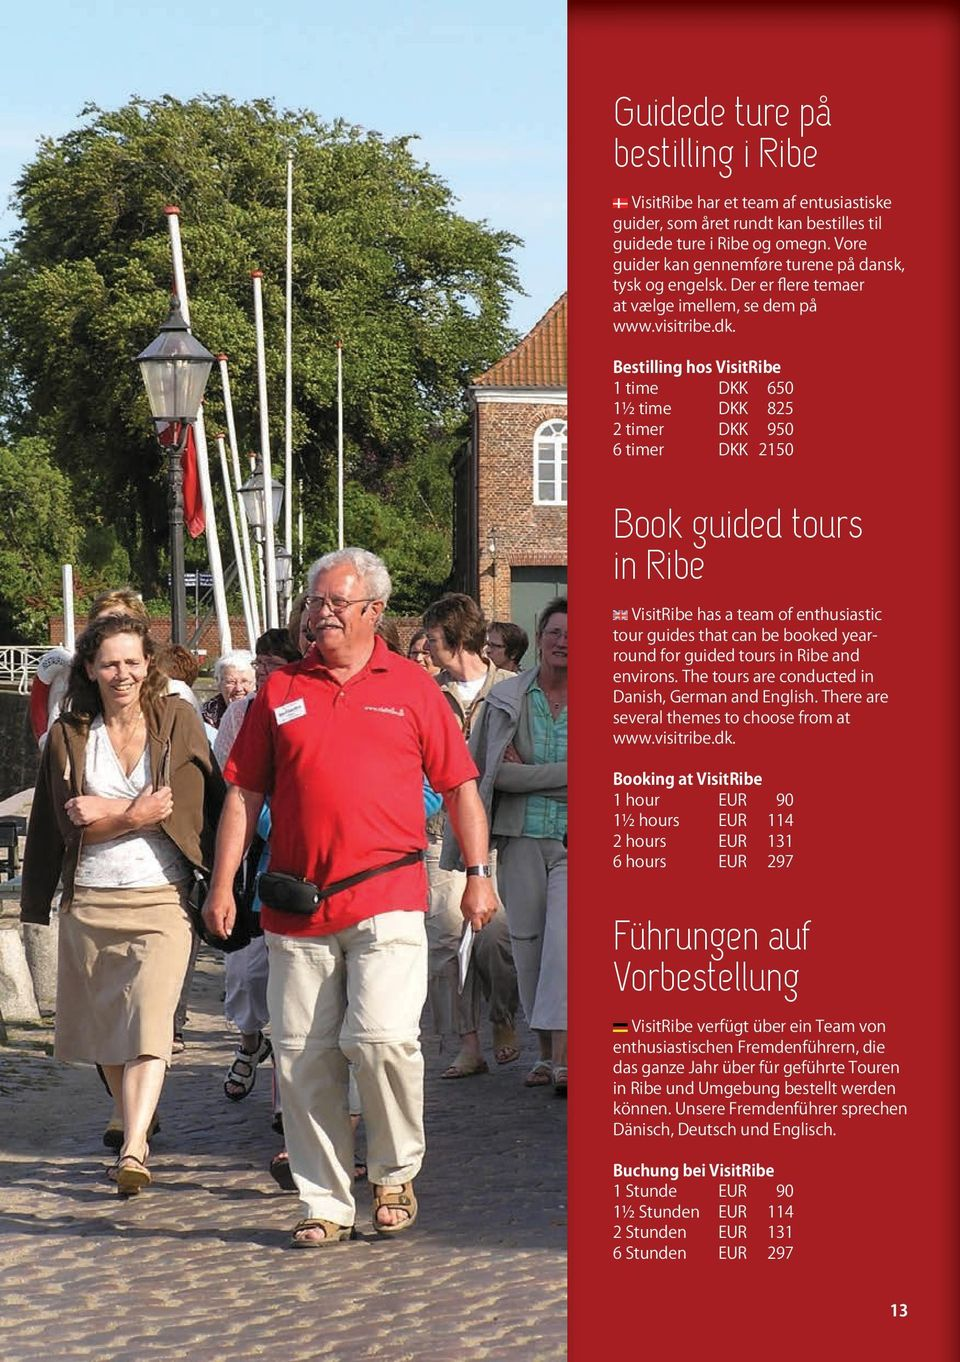 Book guided tours in